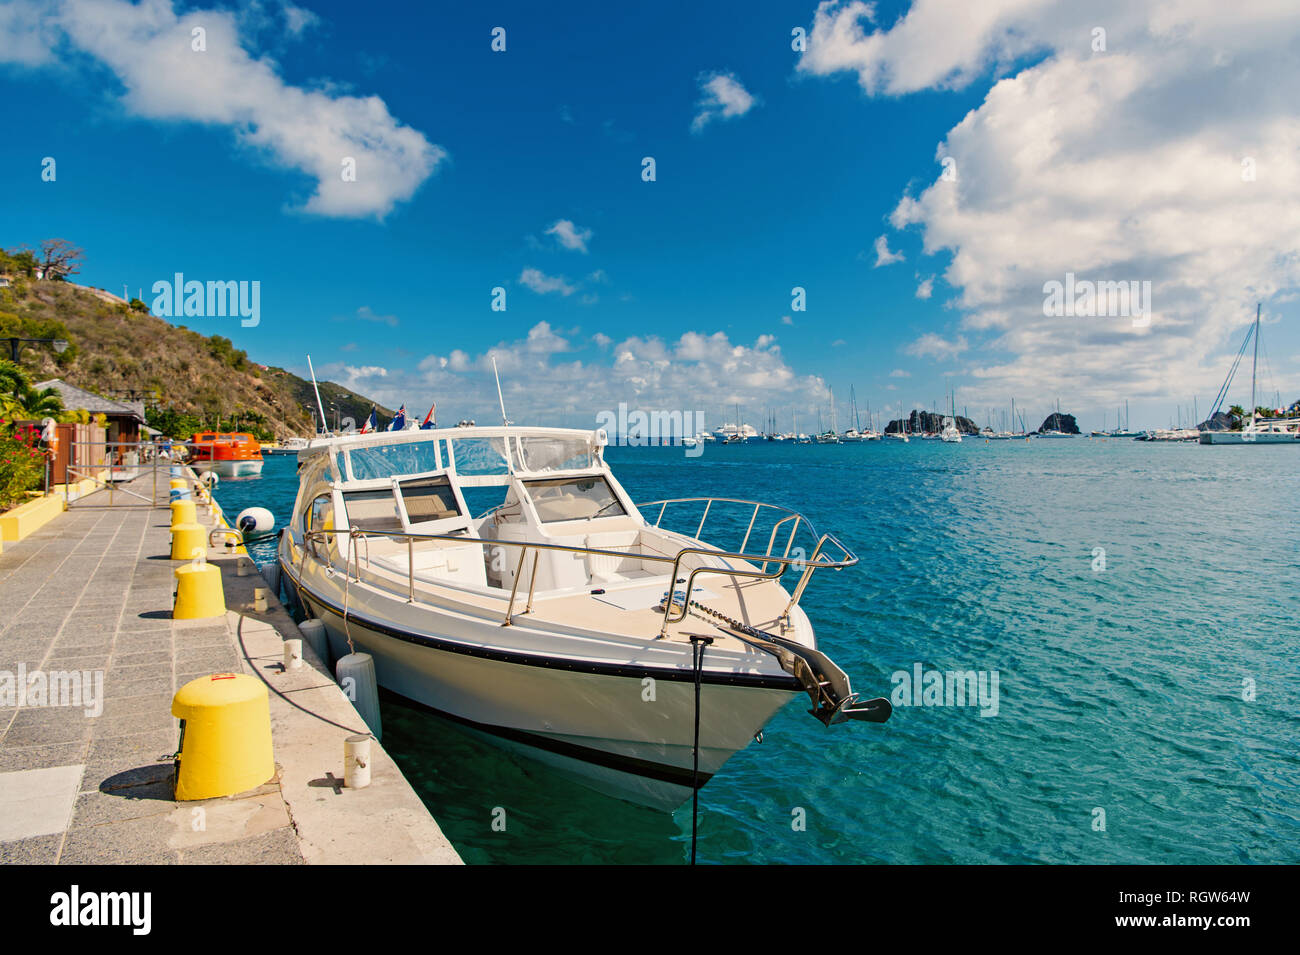 Yacht boat anchored at sea pier on tropical beach in gustavia, st.barts. Yachting and sailing. Luxury travel on boat. Summer vacation on island. Water transport and marine vessel. - Stock Image